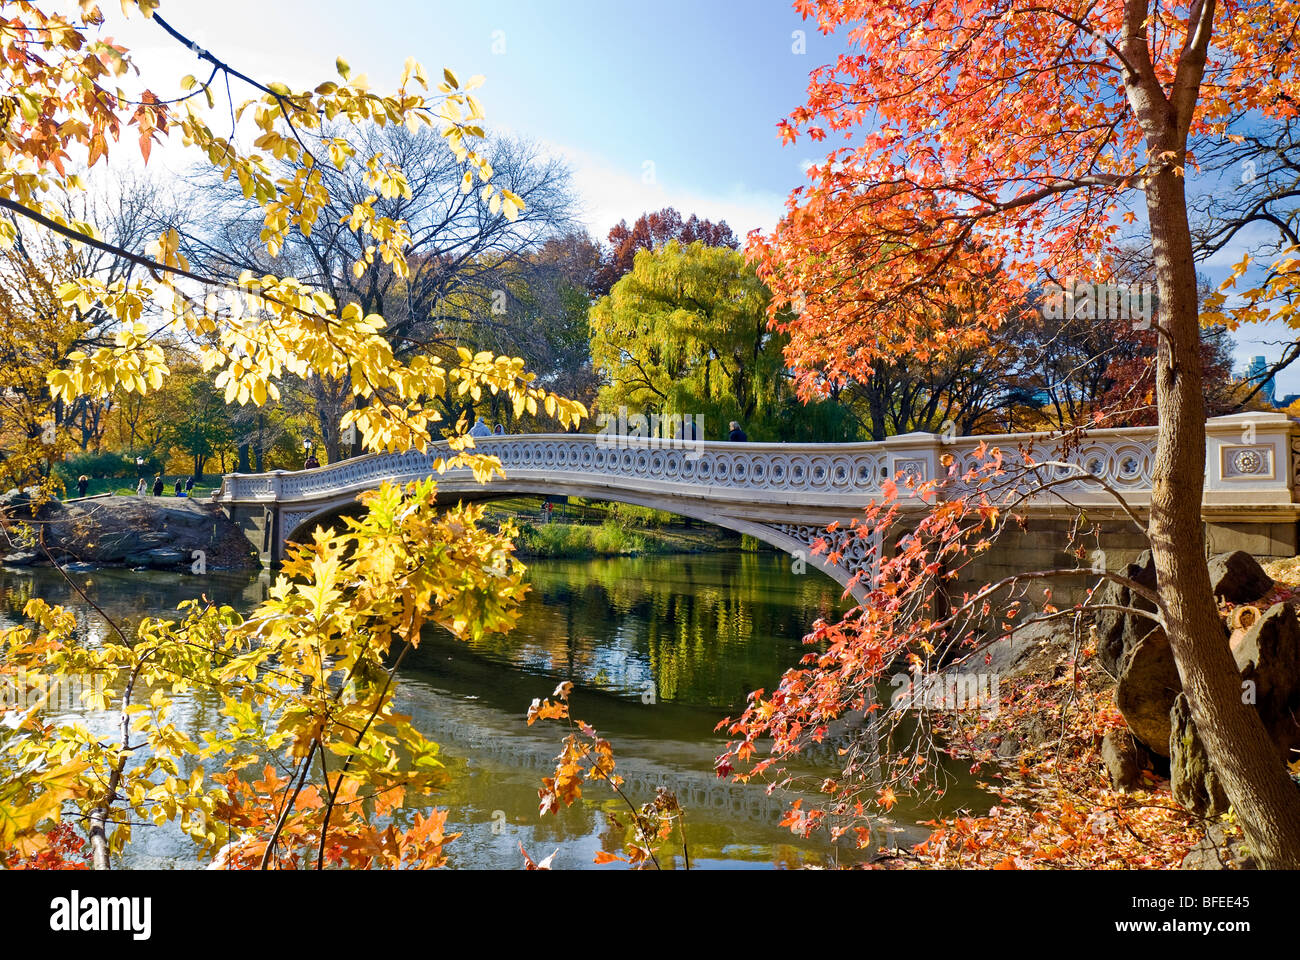 Bow Bridge in Autumn, Central Park, New York City. - Stock Image